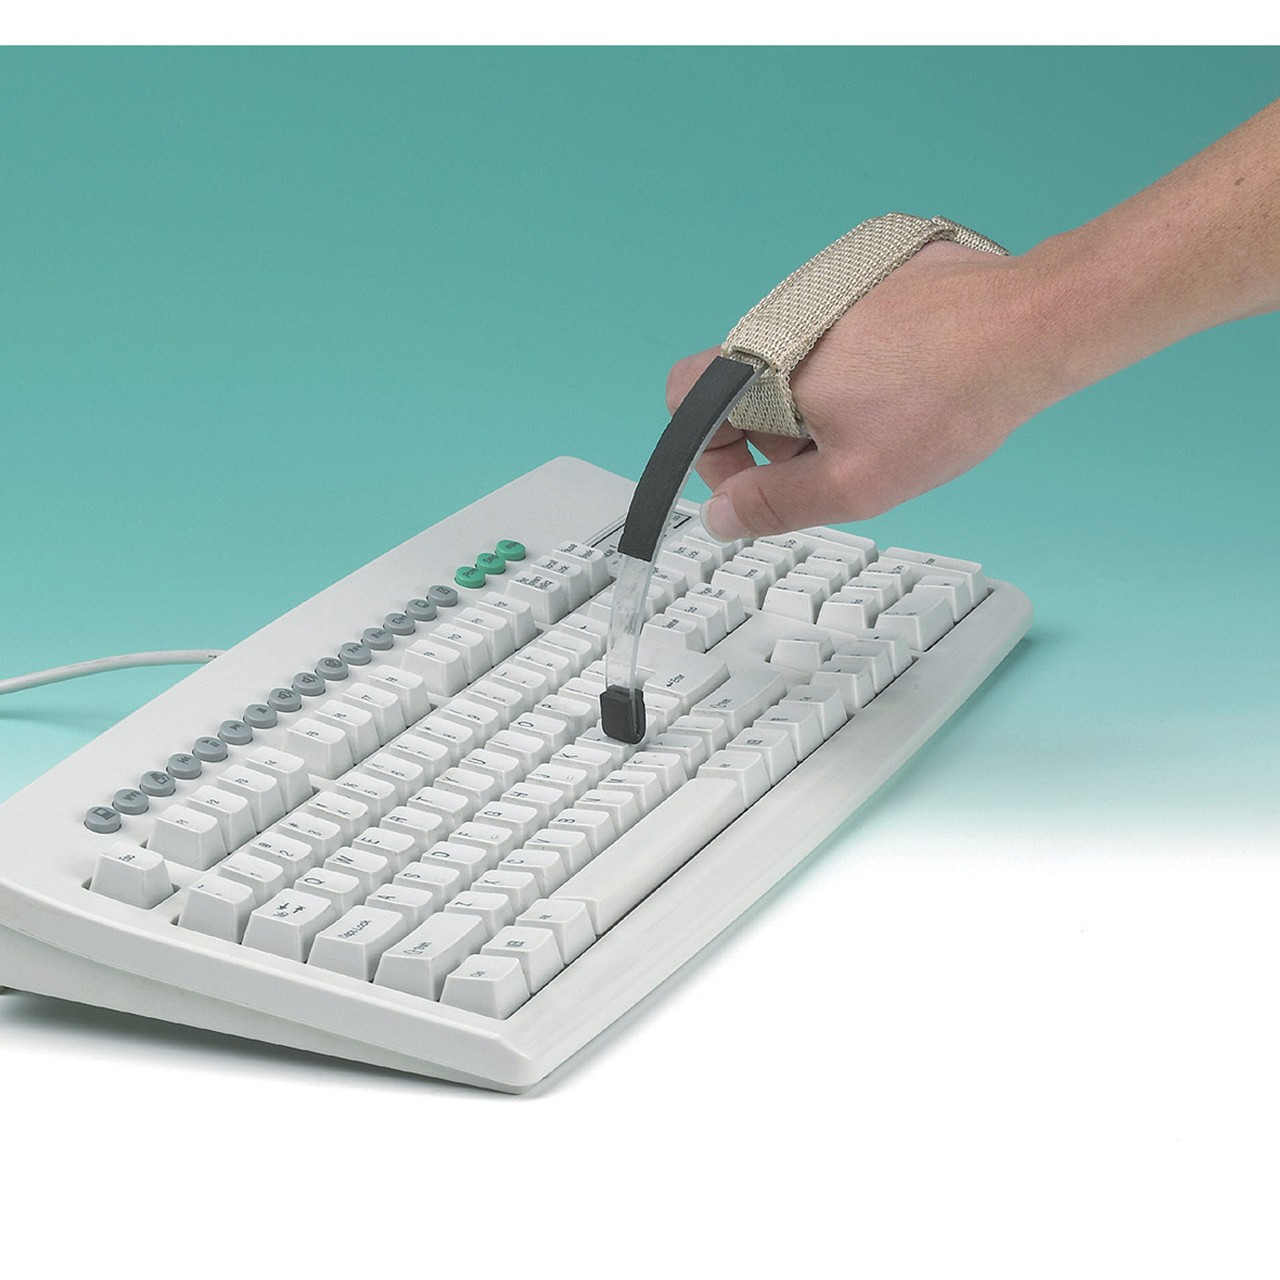 MaxiAids | Page Turner-Keyboard Aid with Wrist Cuff